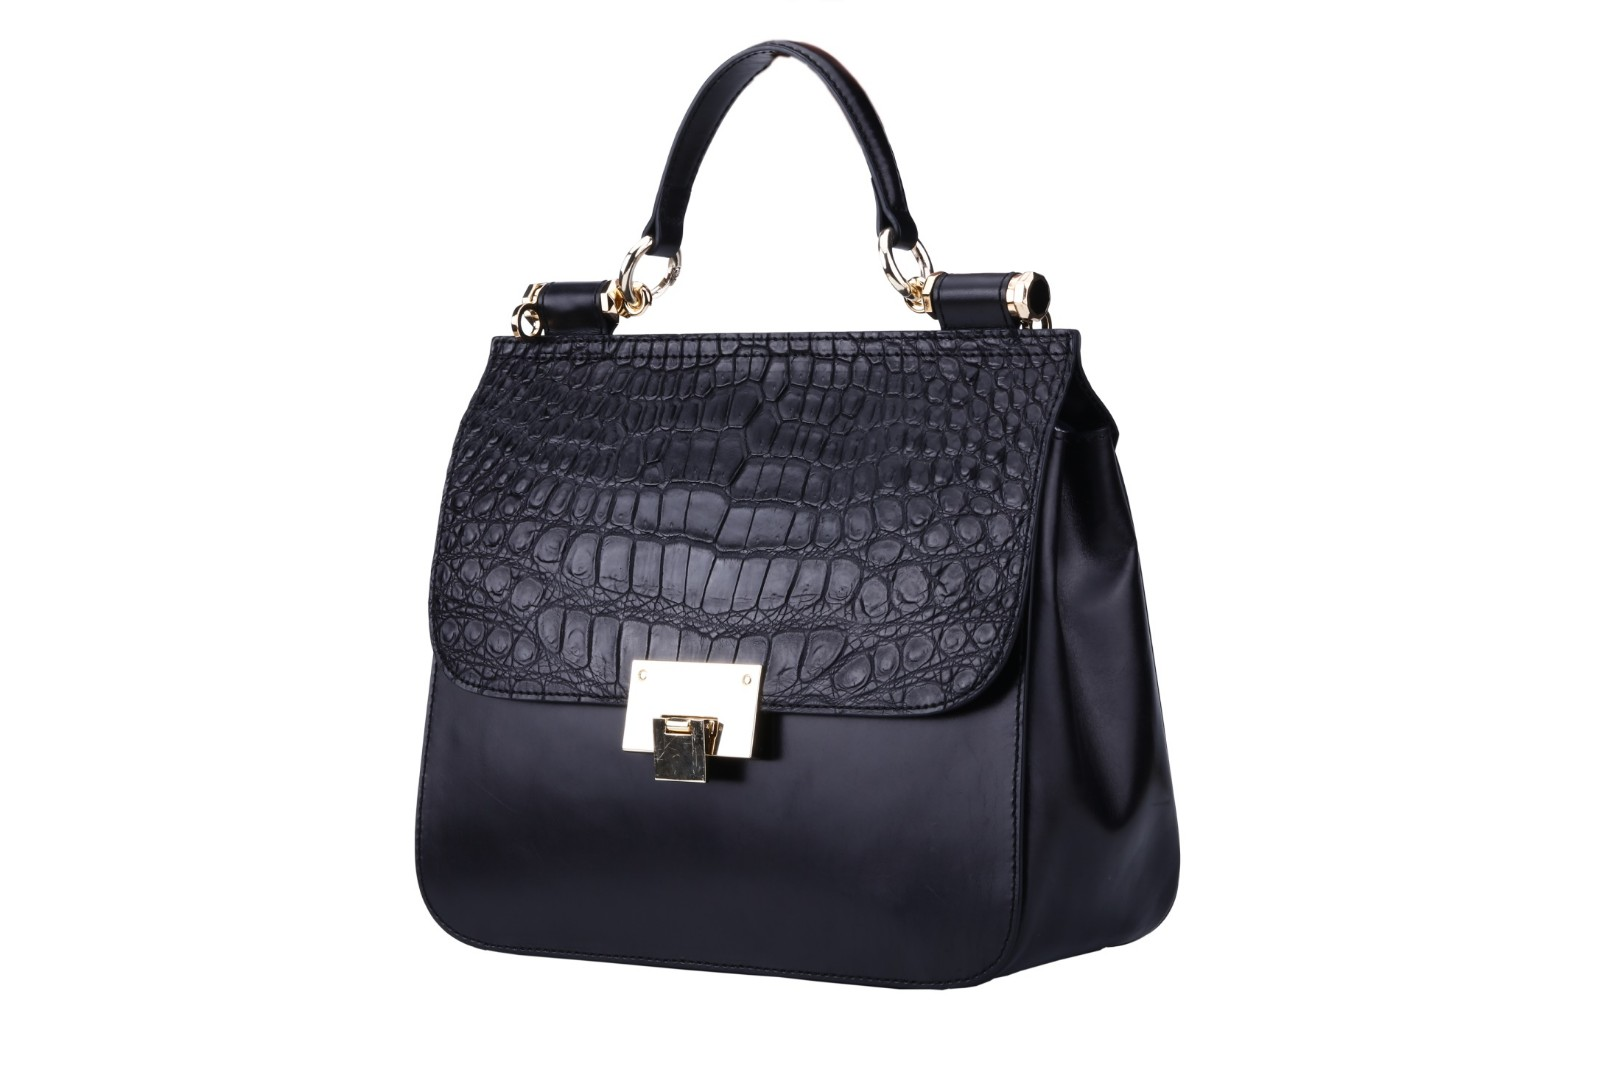 GF bags simple fashion handbags make for ladies-9